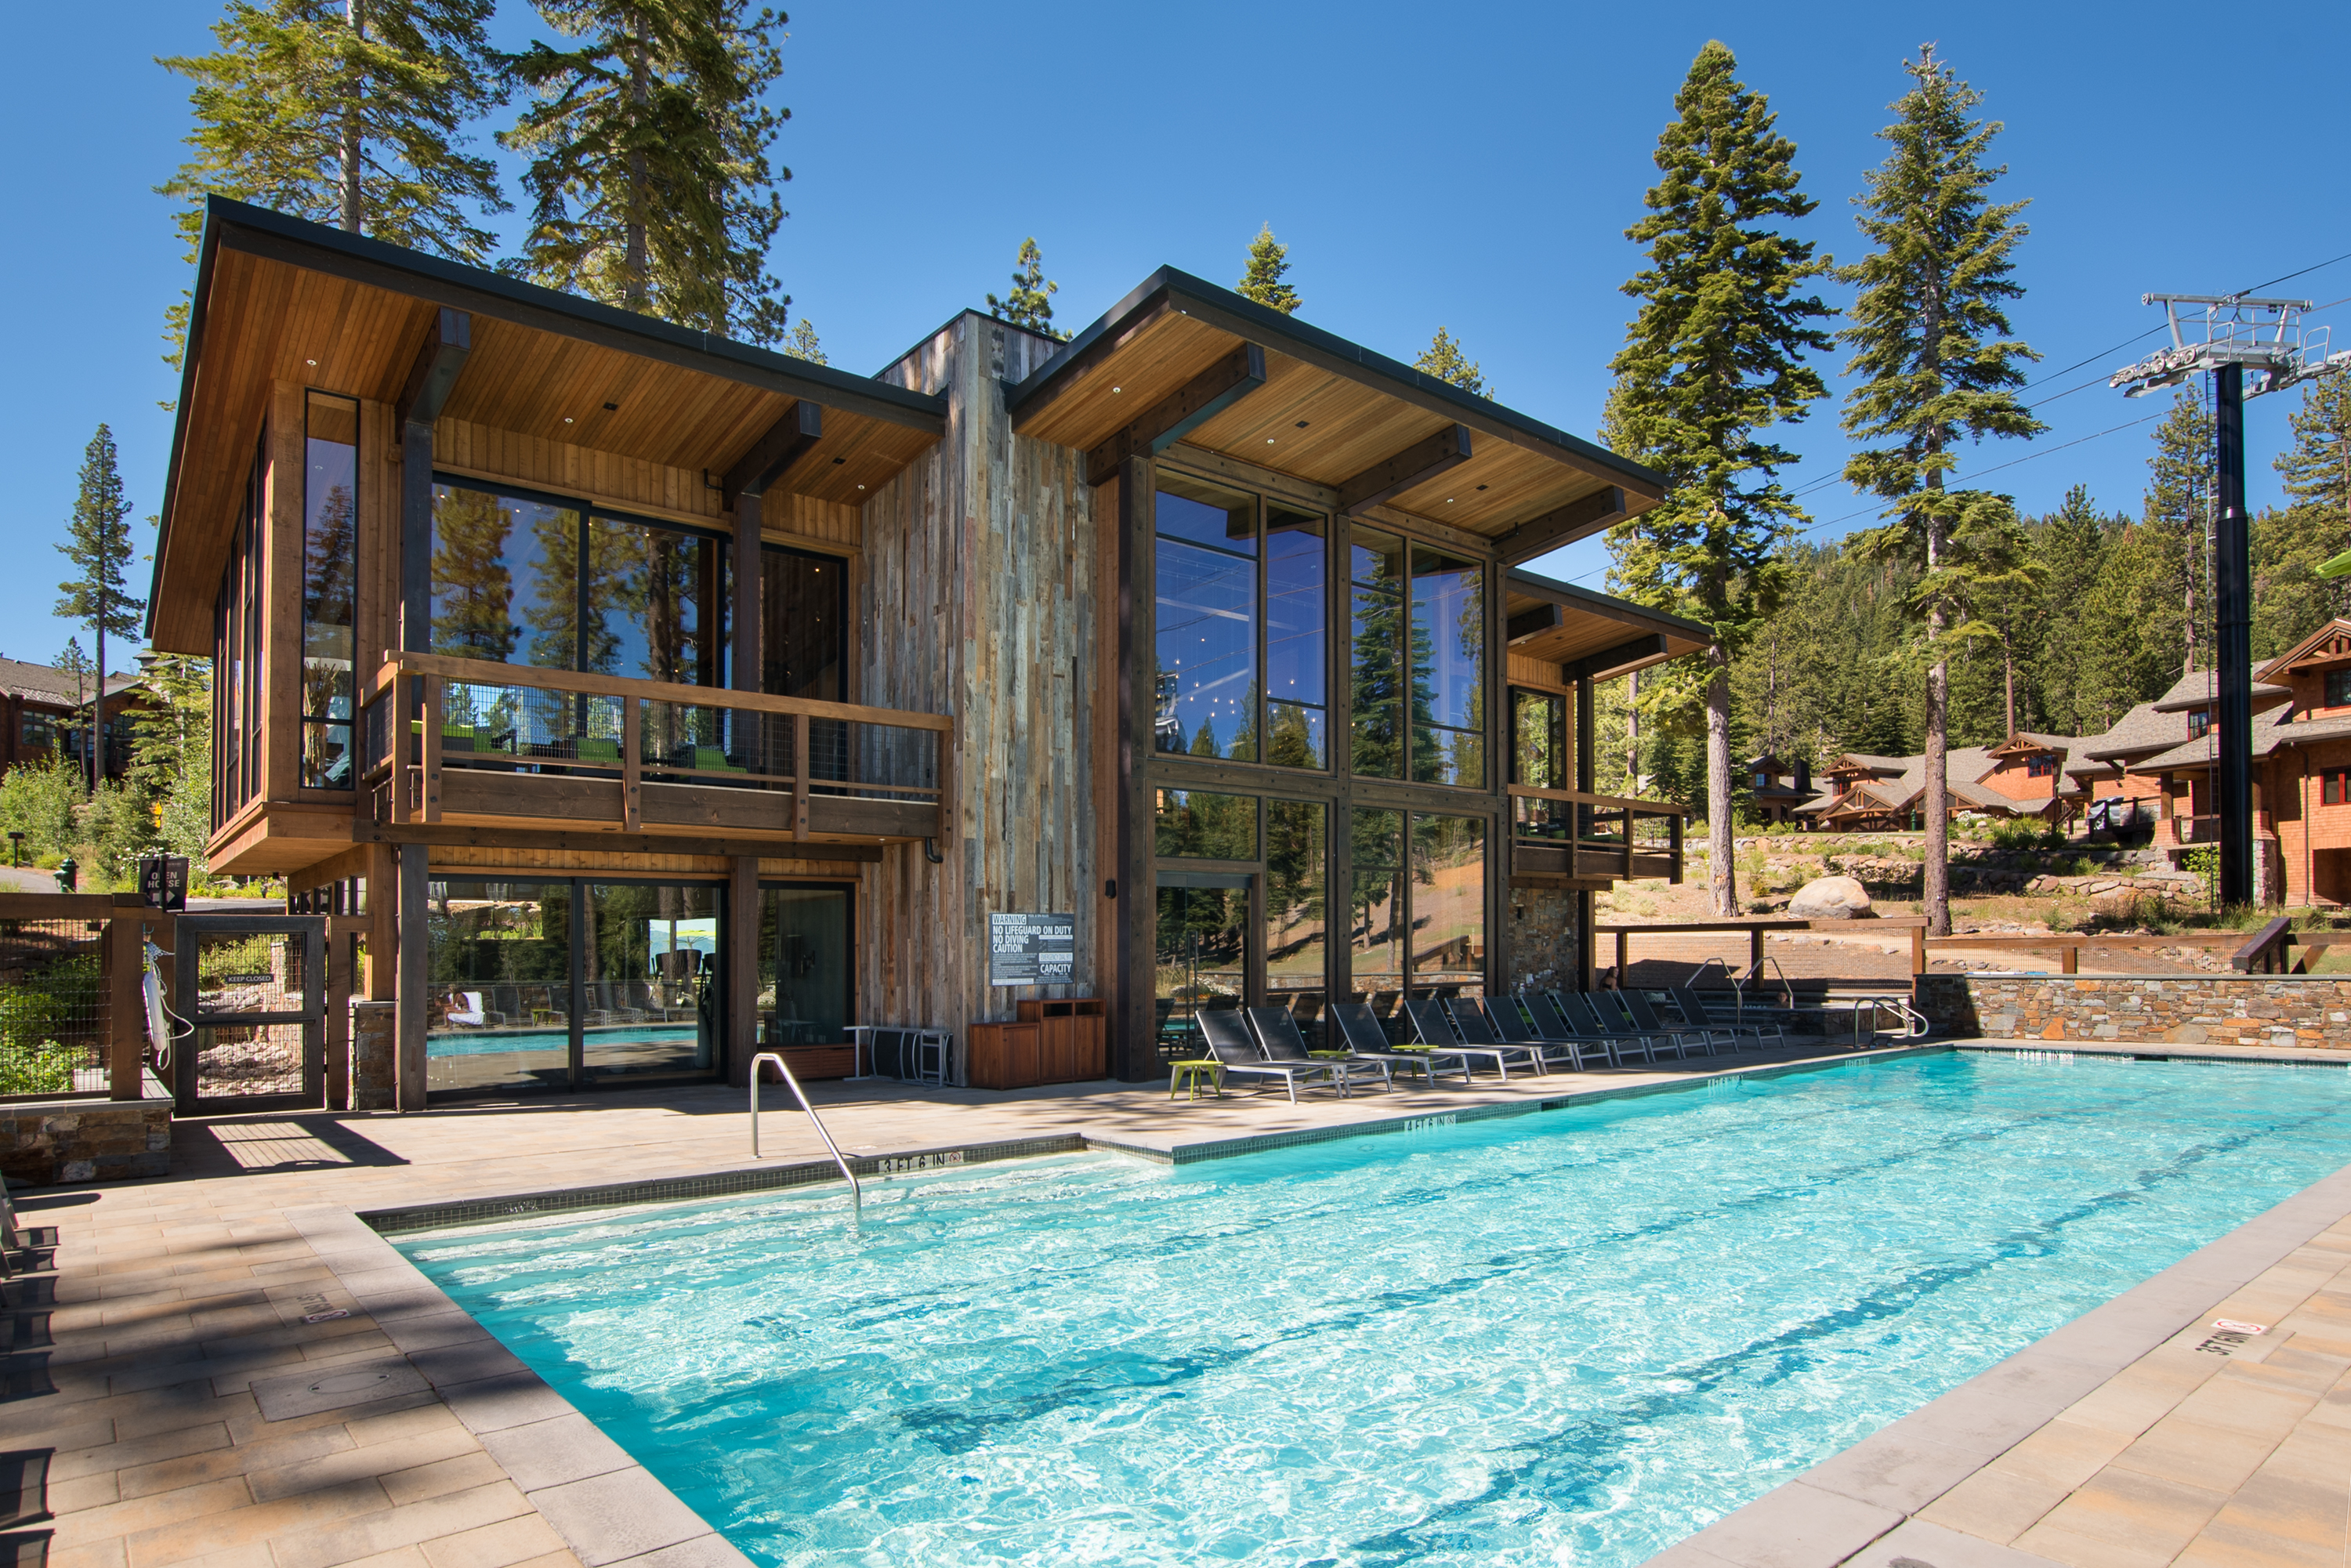 crystal road rentals of estate rd gonowabie cabins bay luxury lake tahoe res high nv real featured properties lakefront